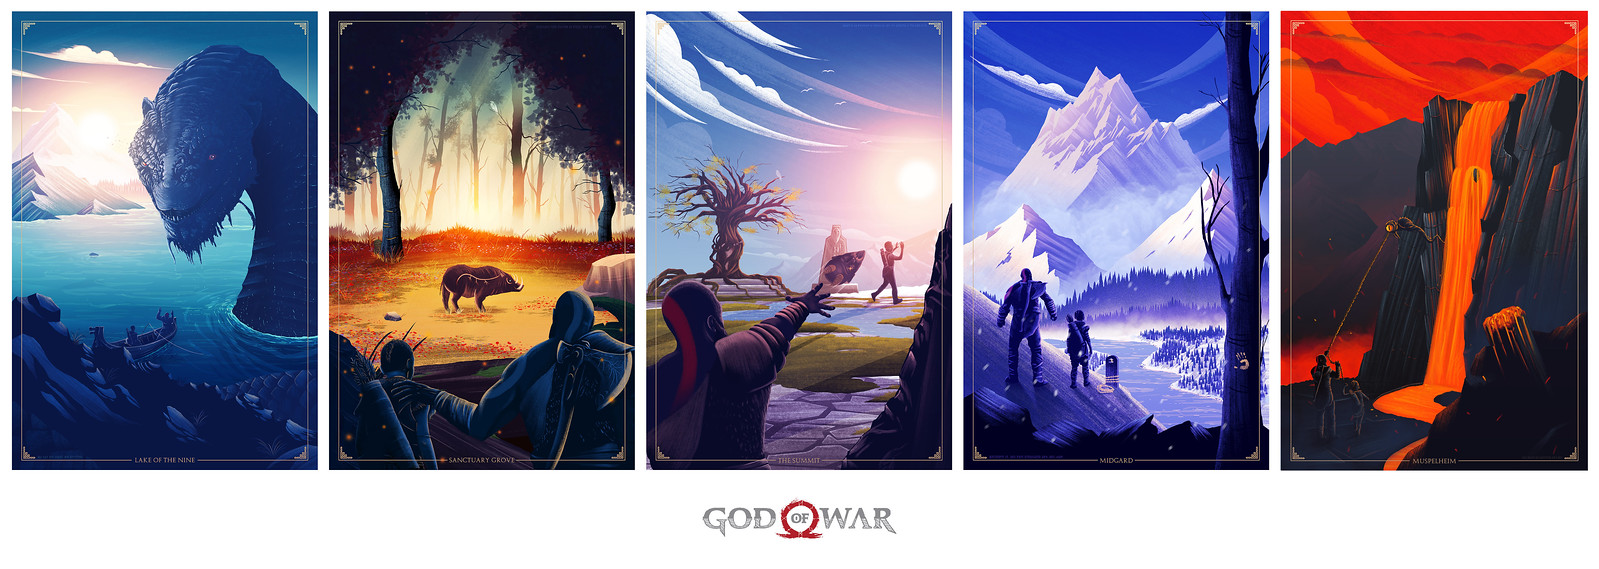 God of War: Father's Day Posters